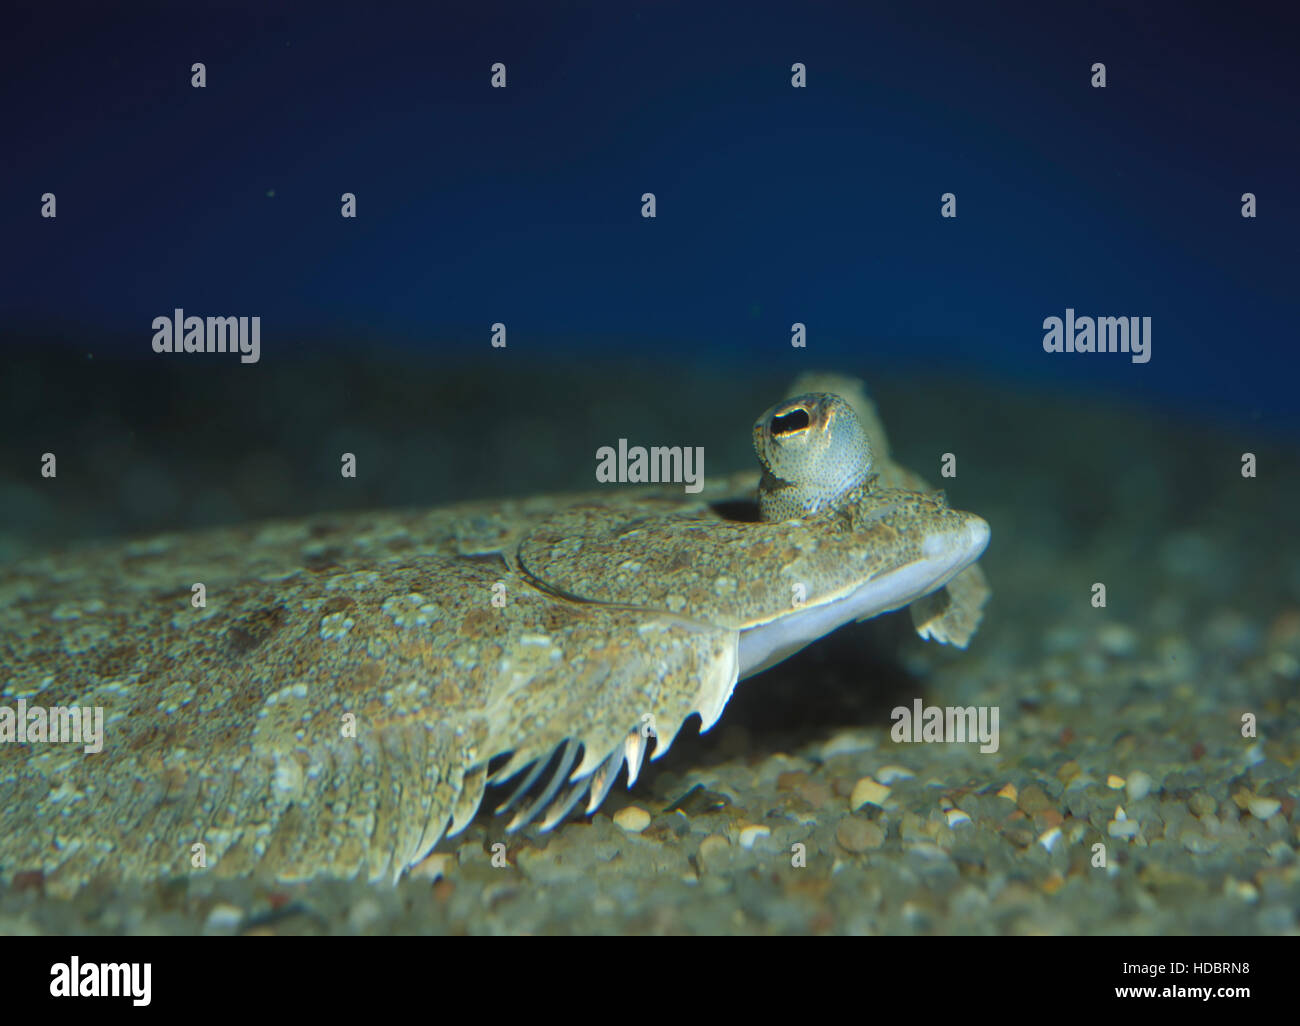 Wide-eyed flounder, Bothus podas maderensis. Head detail. Azores, Portugal - Stock Image